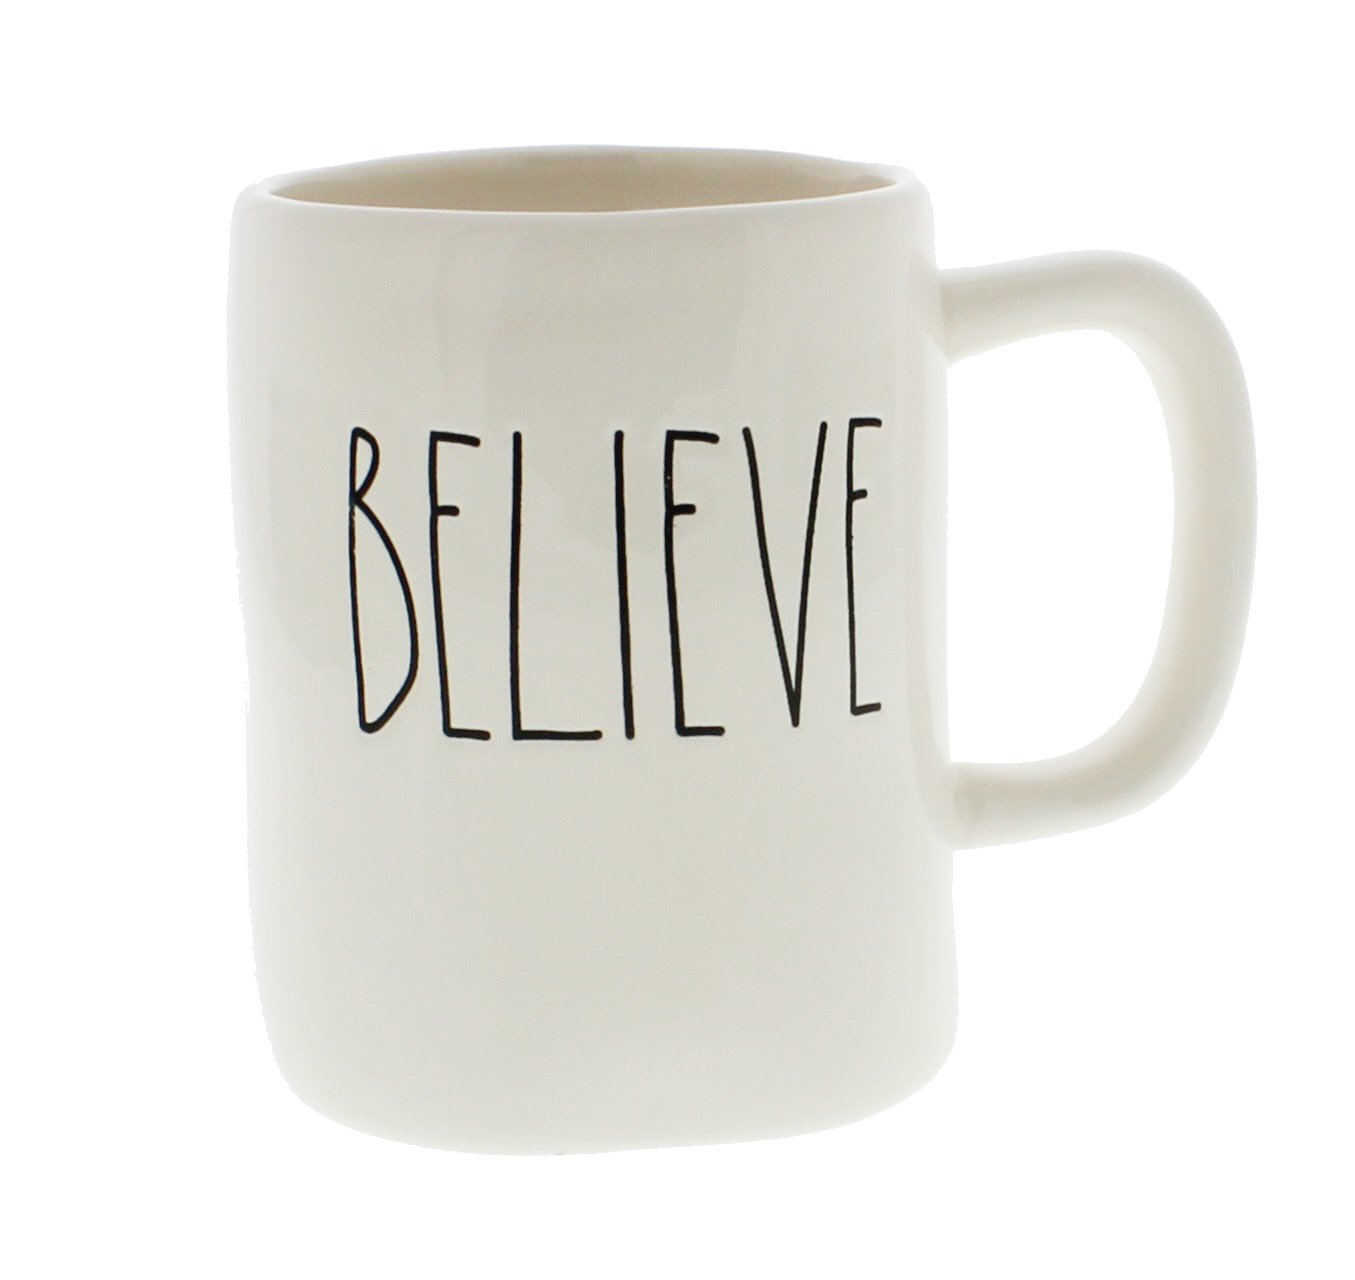 Rae Dunn BELIEVE Mug - Artisan Collection